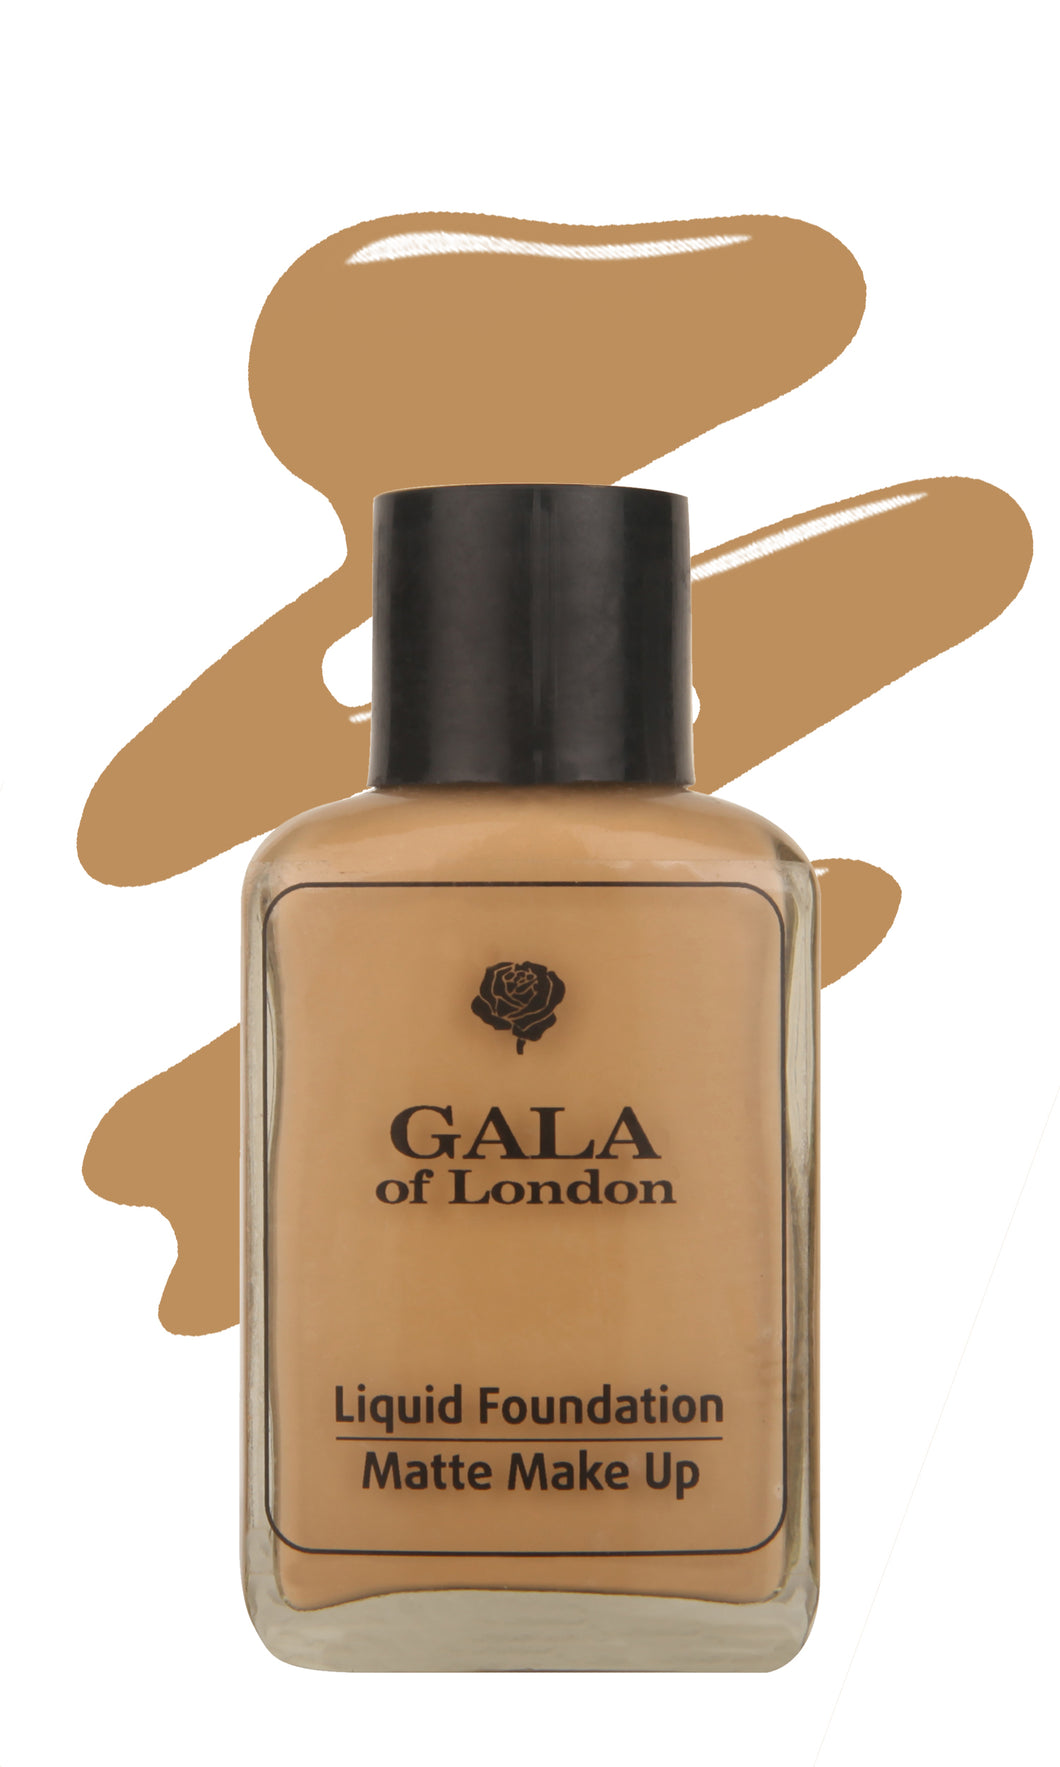 Gala of London Matte Foundation 30g - Natural Glow